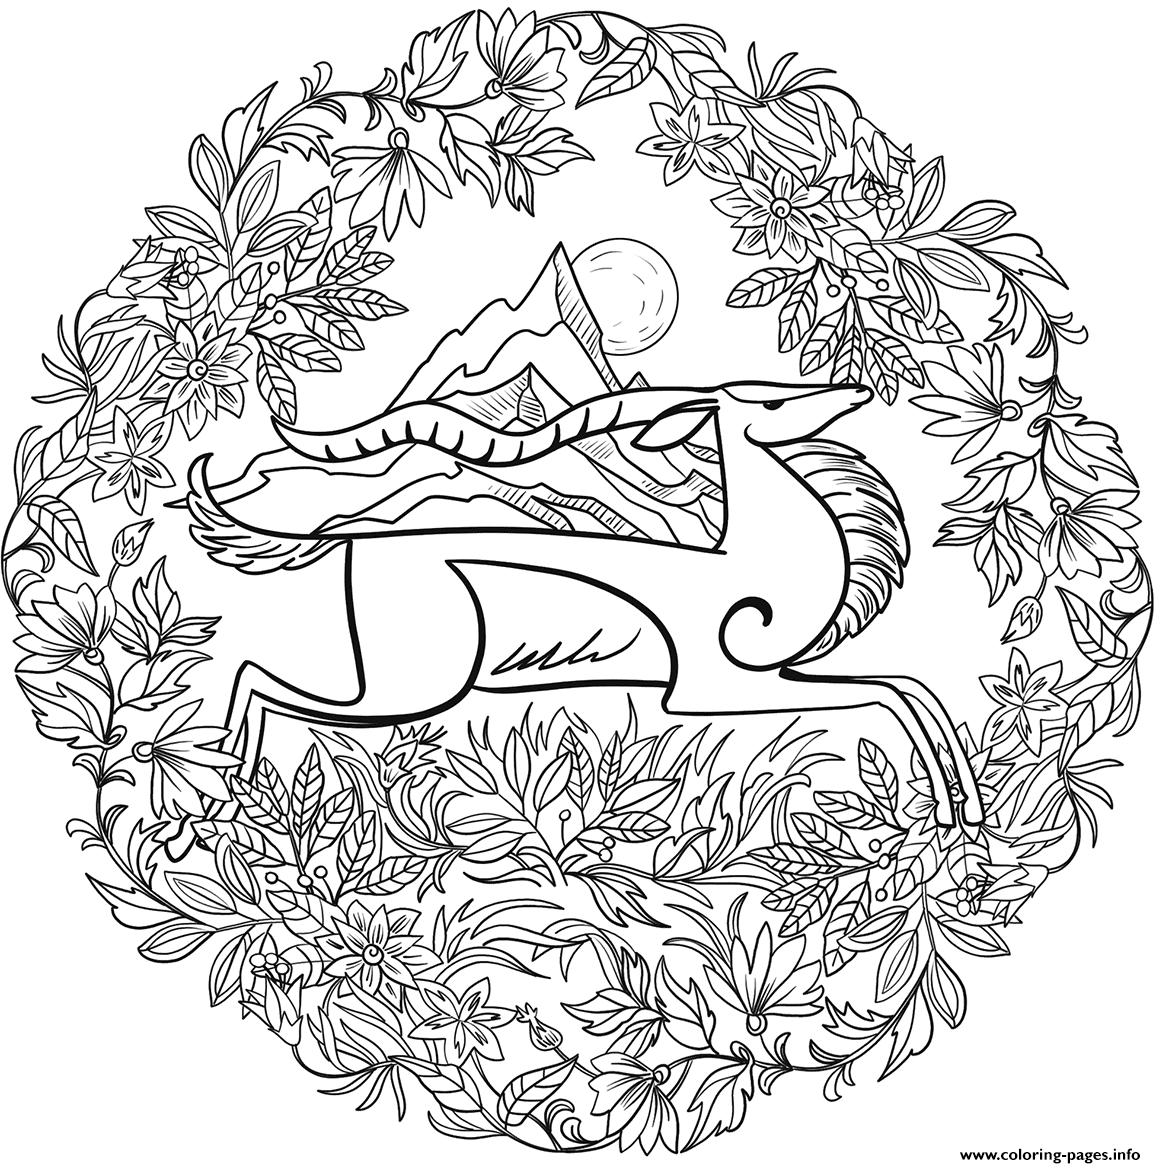 Goat Mandala Animal coloring pages